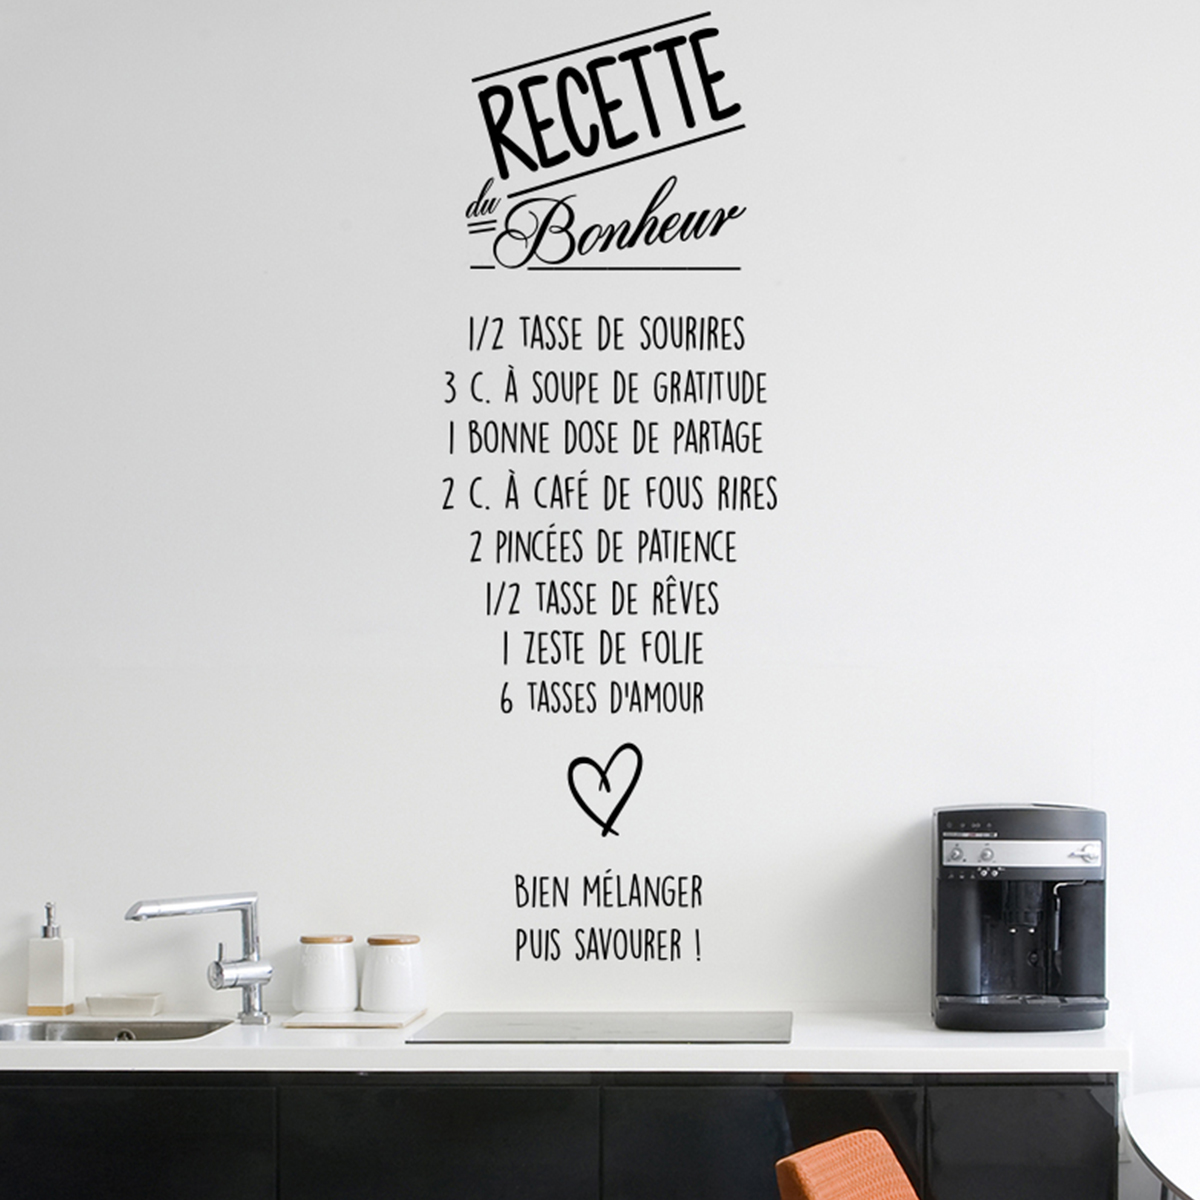 sticker citation recette du bonheur stickers citations fran ais ambiance sticker. Black Bedroom Furniture Sets. Home Design Ideas